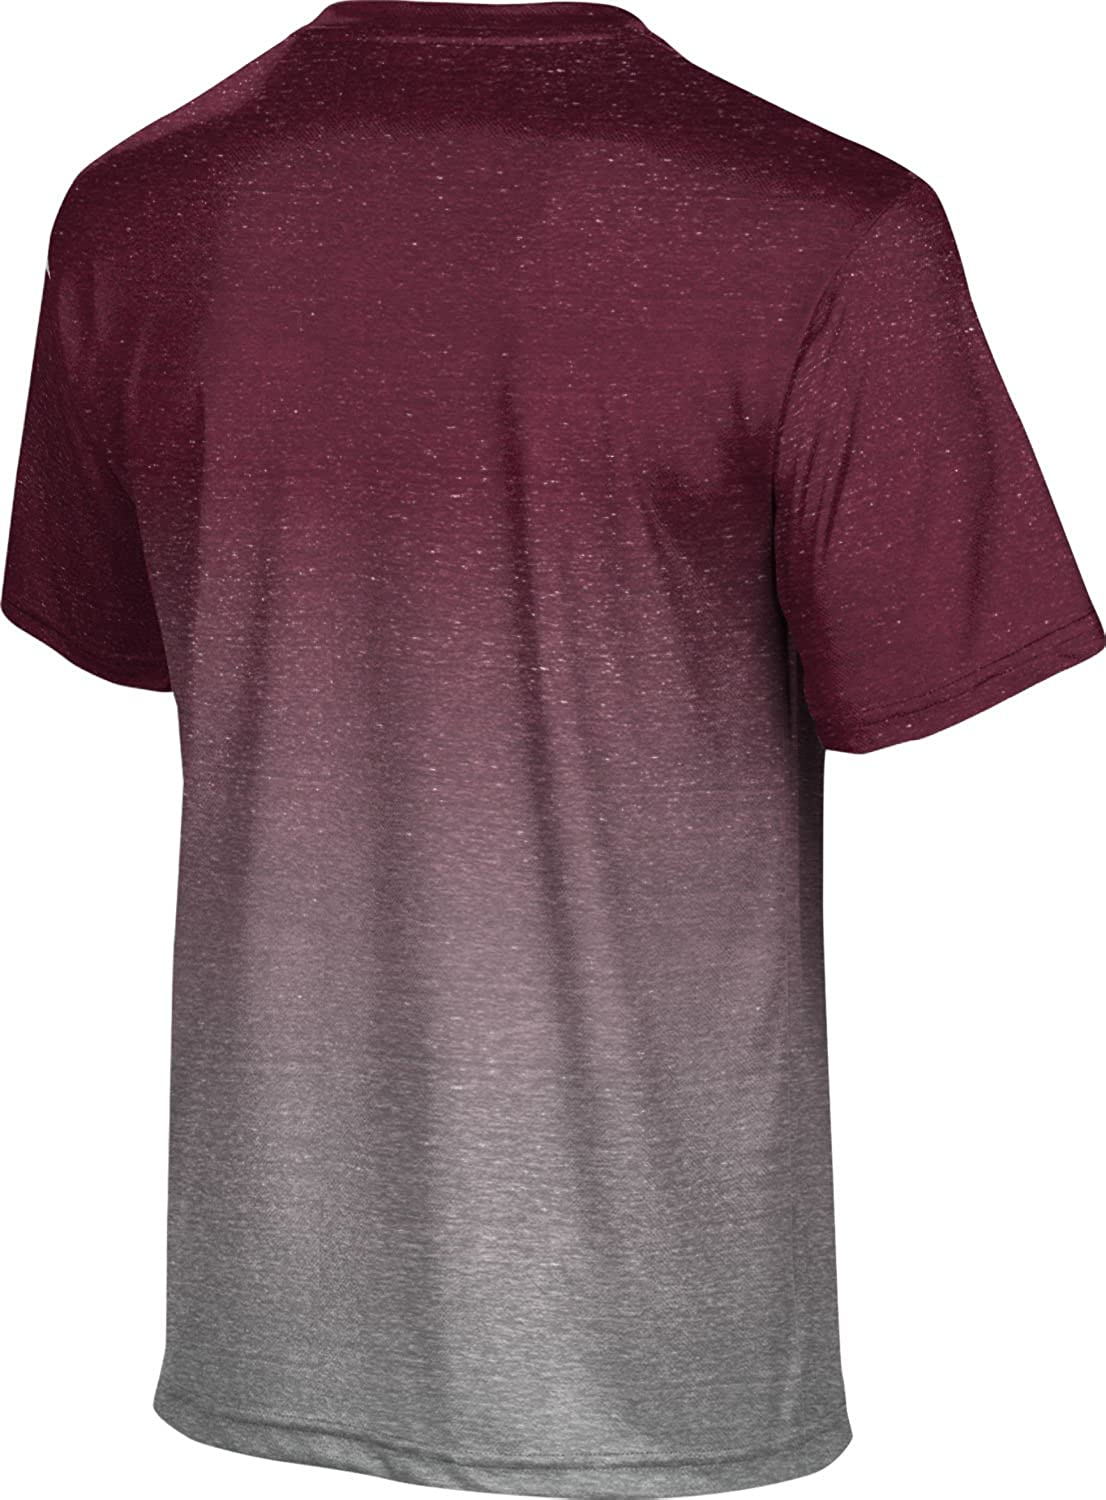 ProSphere Eastern Kentucky University Boys Performance T-Shirt Gradient